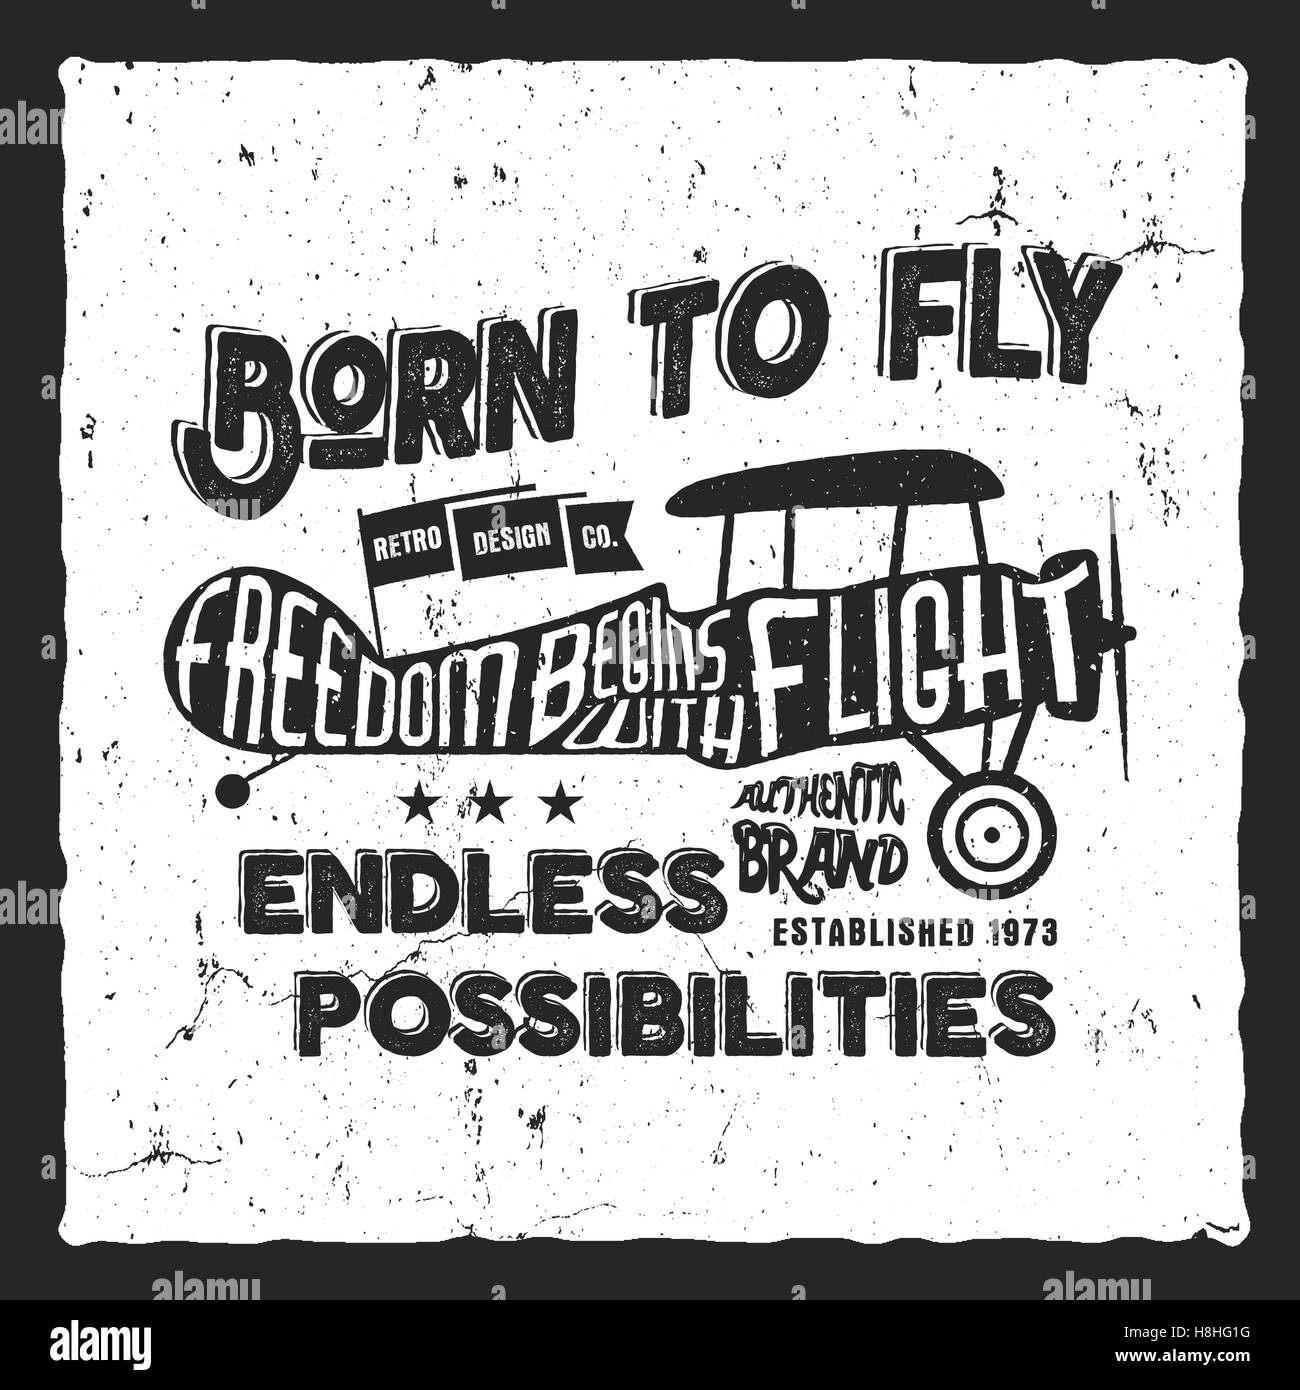 f3a87ba8 Vintage airplane lettering for printing. prints, old school aircraft  poster. Retro air show t shirt design with motivational text. Typography  print design.